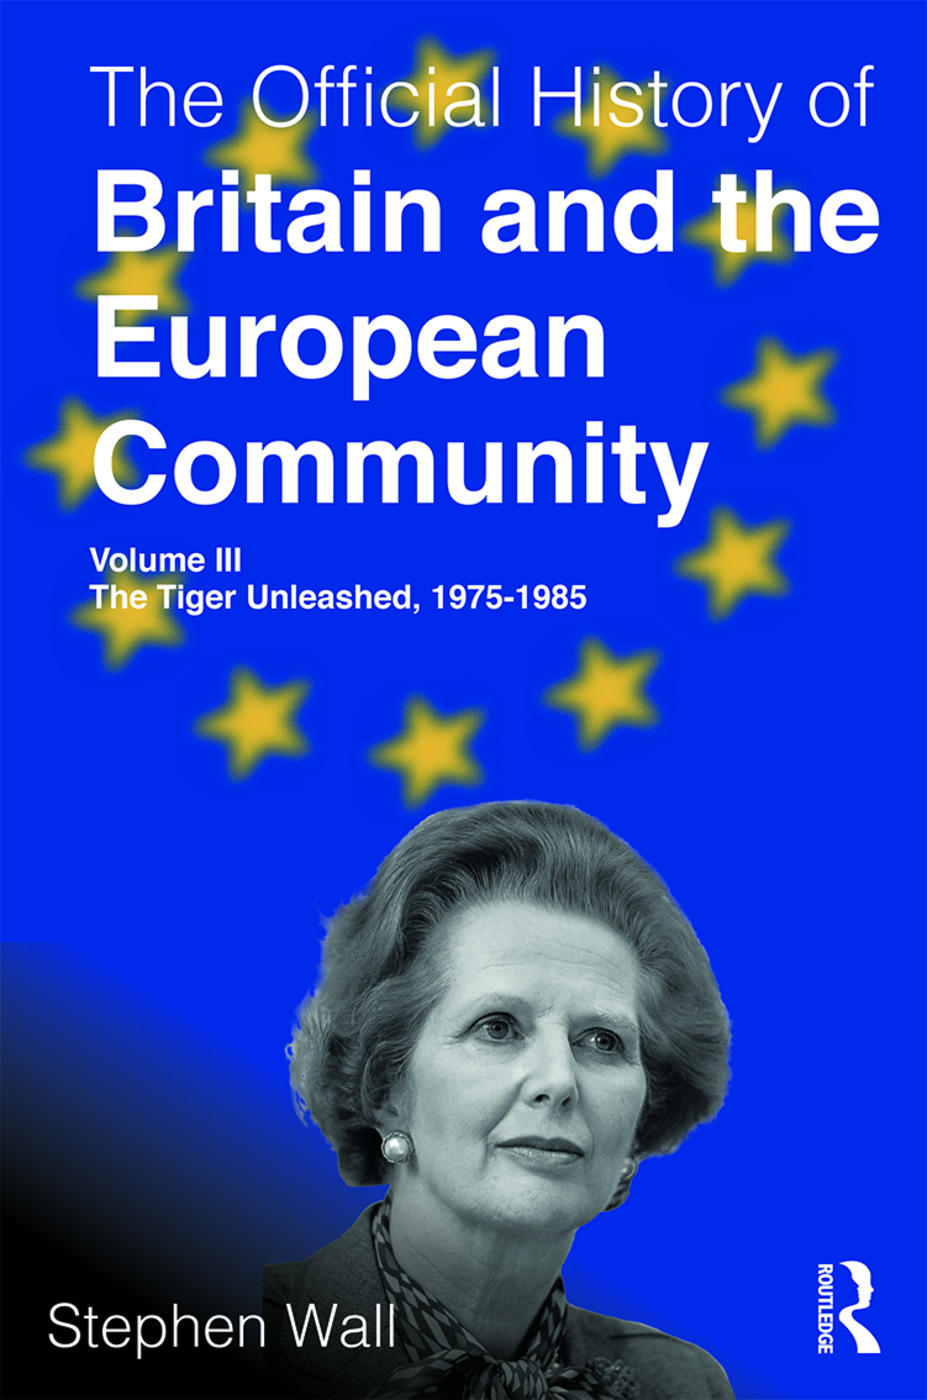 The Official History of Britain and the European Community, Volume III: The Tiger Unleashed, 1975-1985 book cover